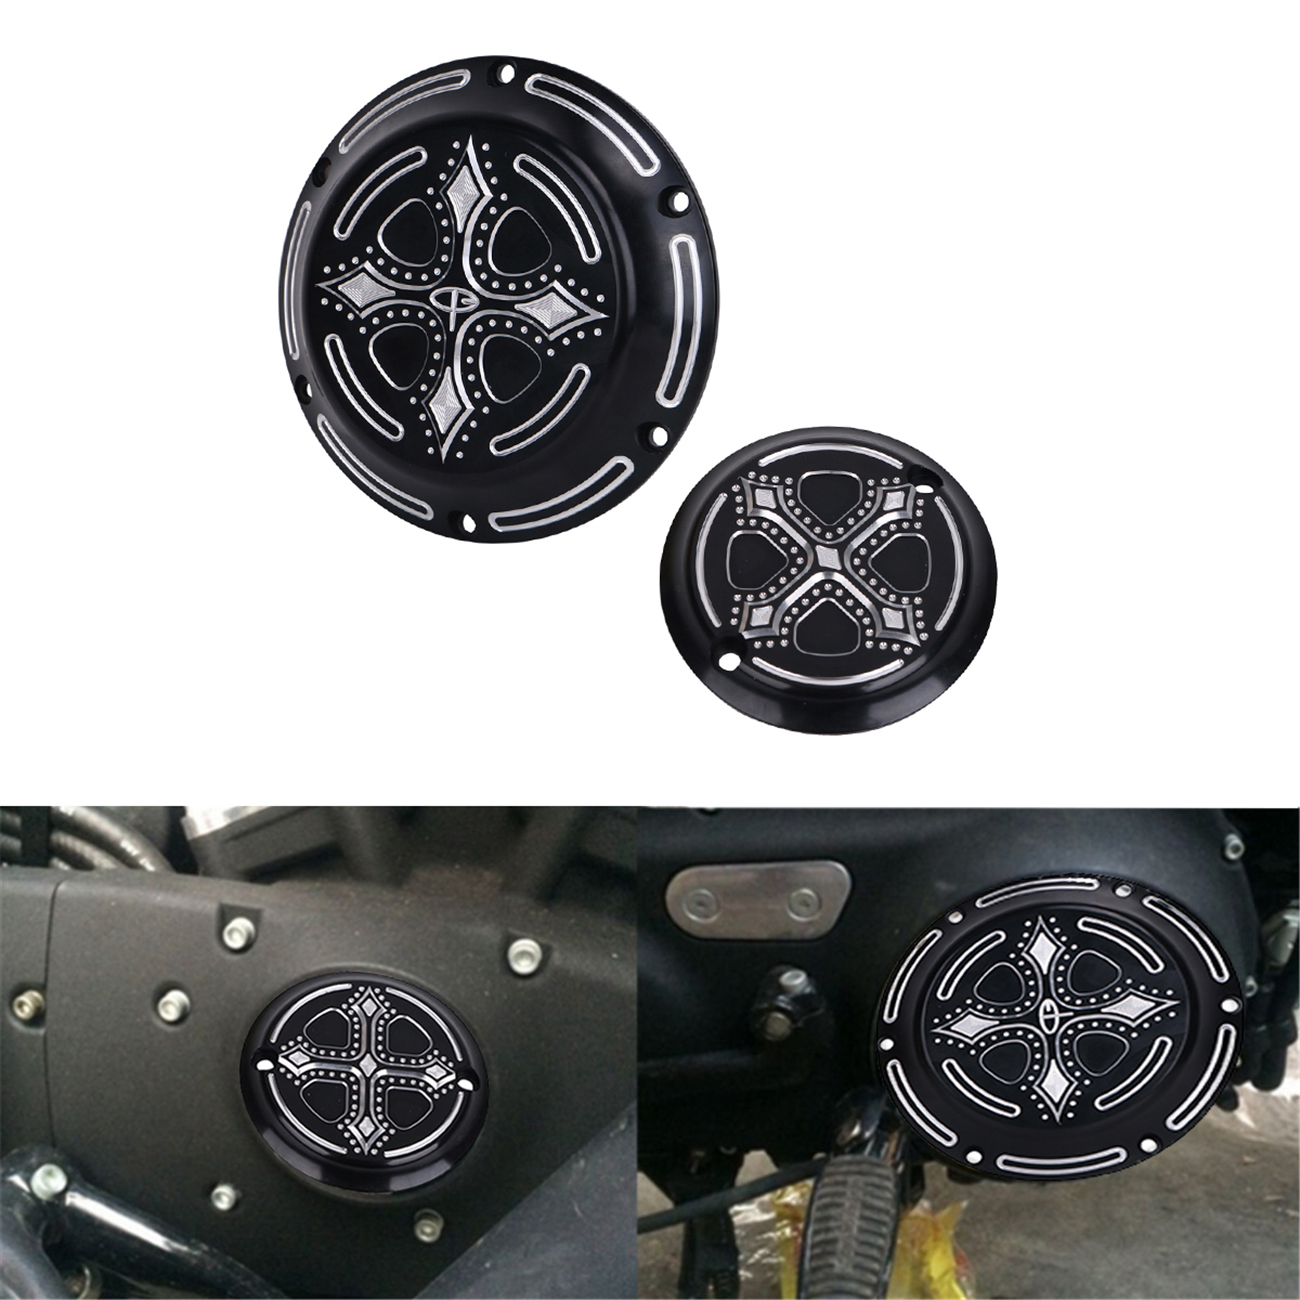 Motorbike CNC Deep Cut Crow Cross Heart Derby Timing Timer Cover Engine For Harley XL XR Sportster 883 1200 XL883 XL1200 #MBJ327 cnc engine cover cross derby